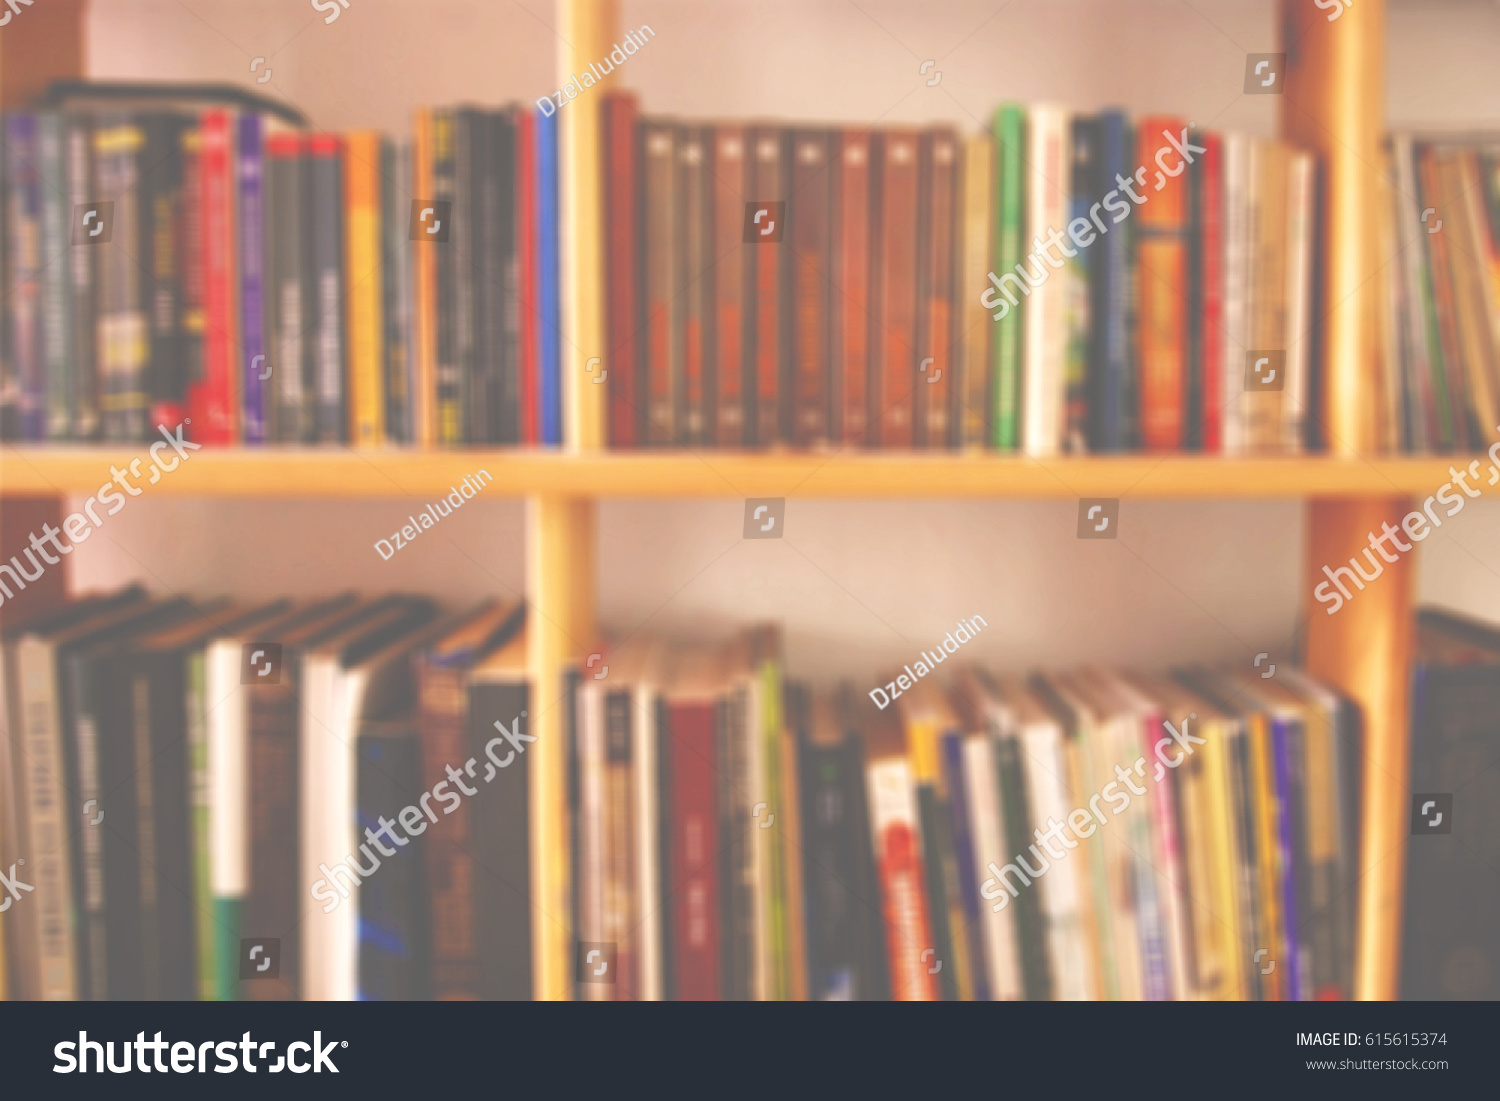 Bookshelf Books Background Blur Stock Photo Royalty